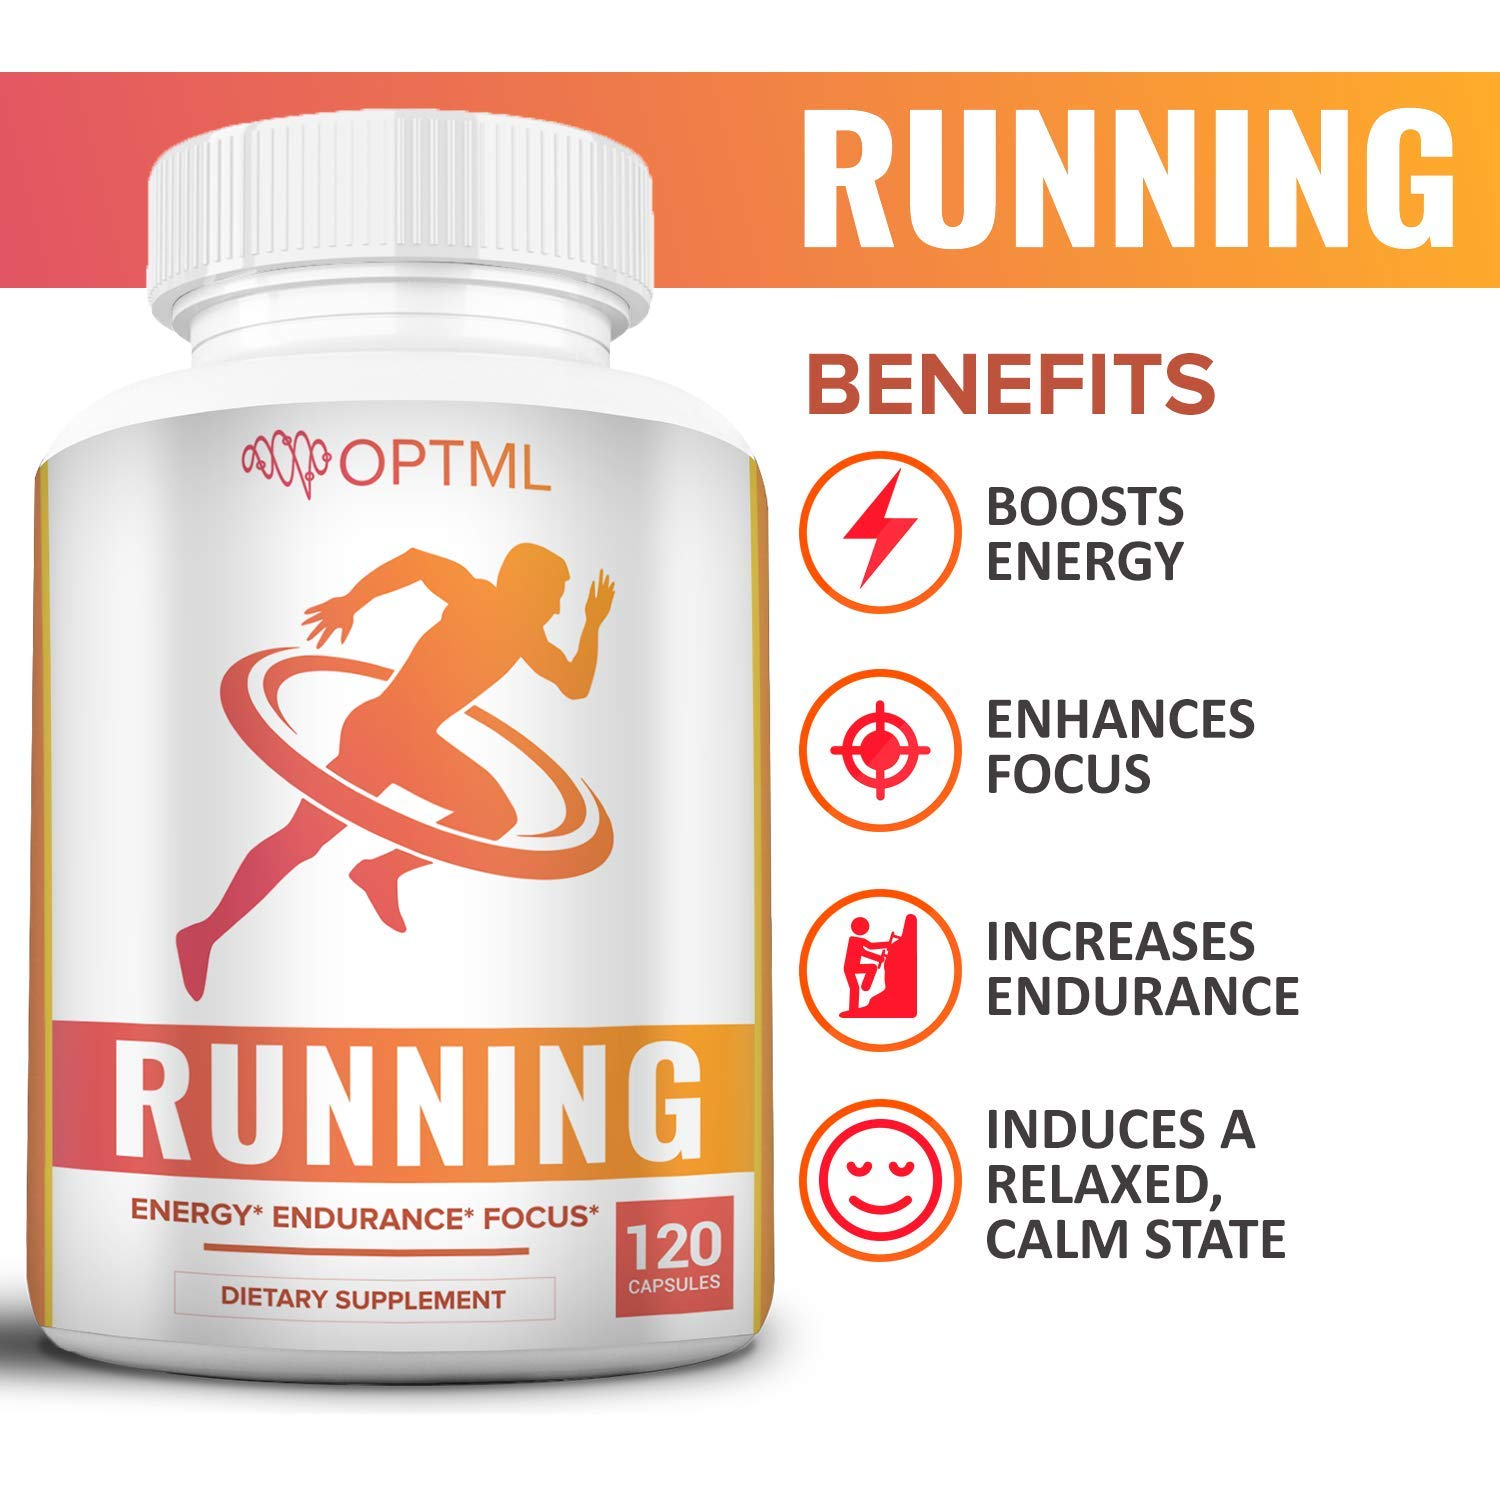 OPTML Running Performance Supplement Boosts Energy Increased Endurance Enhanced Focus Reduced Stress Run Longer and Faster 120 Capsules